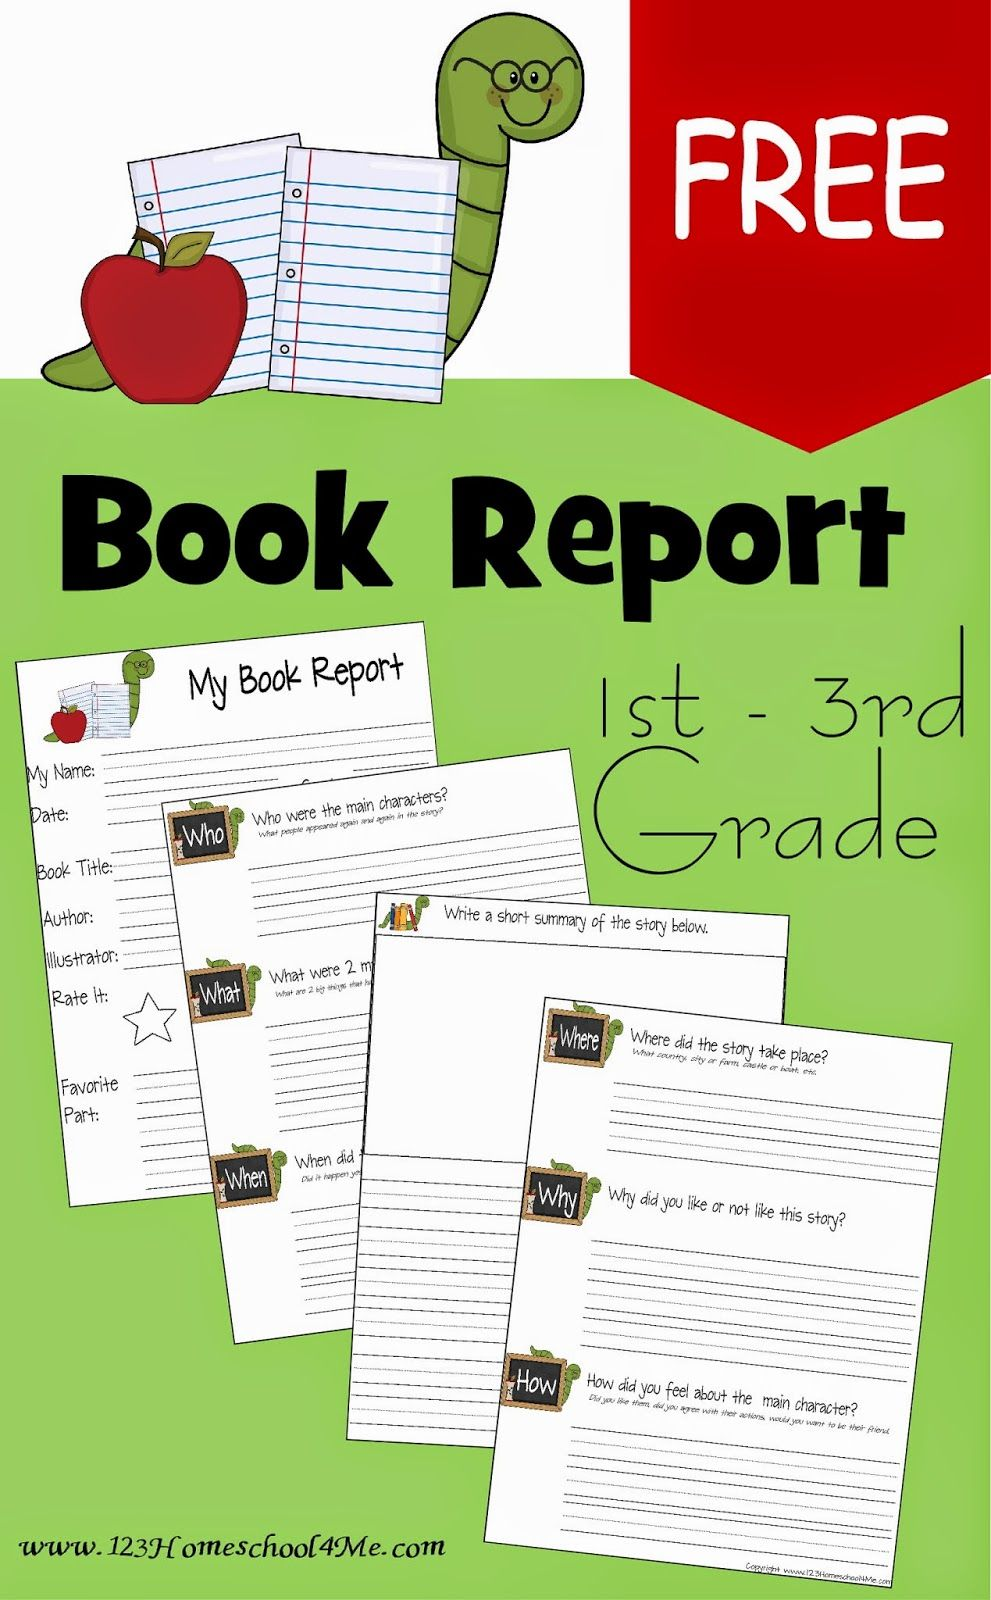 The help book report